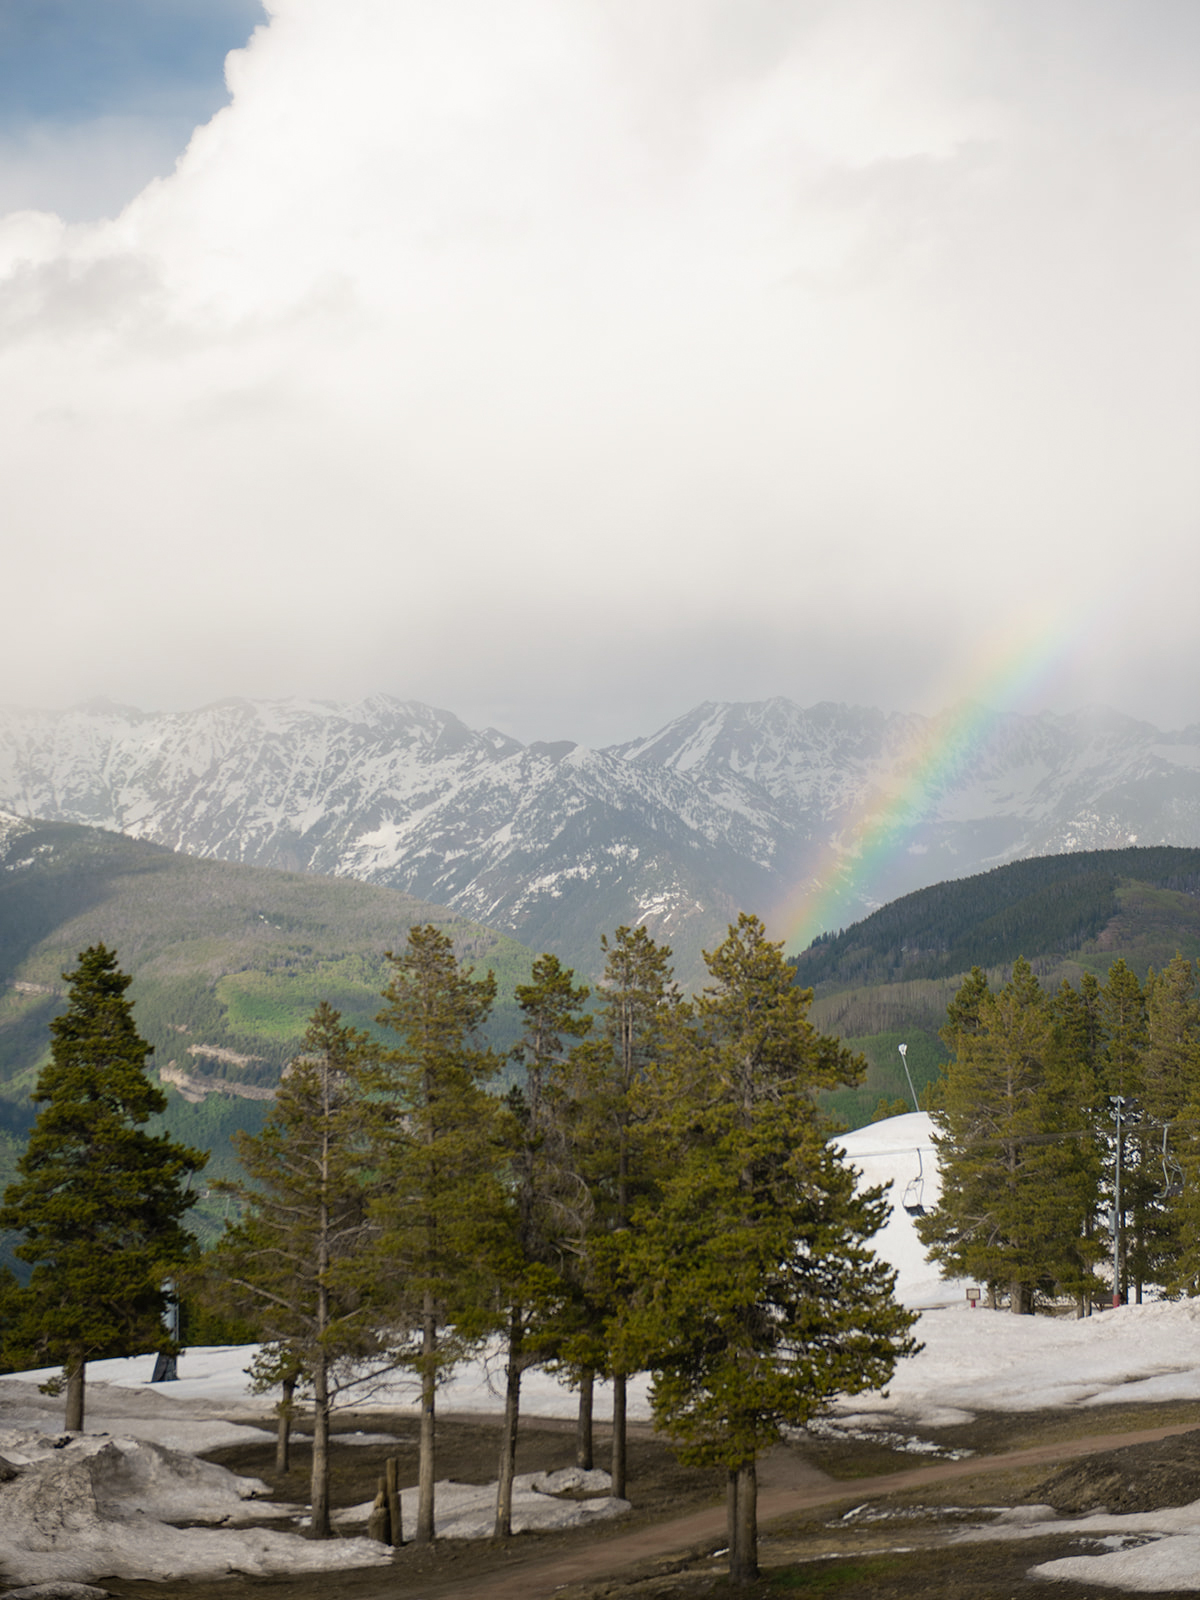 Colorado mountain view fog rainbow scene